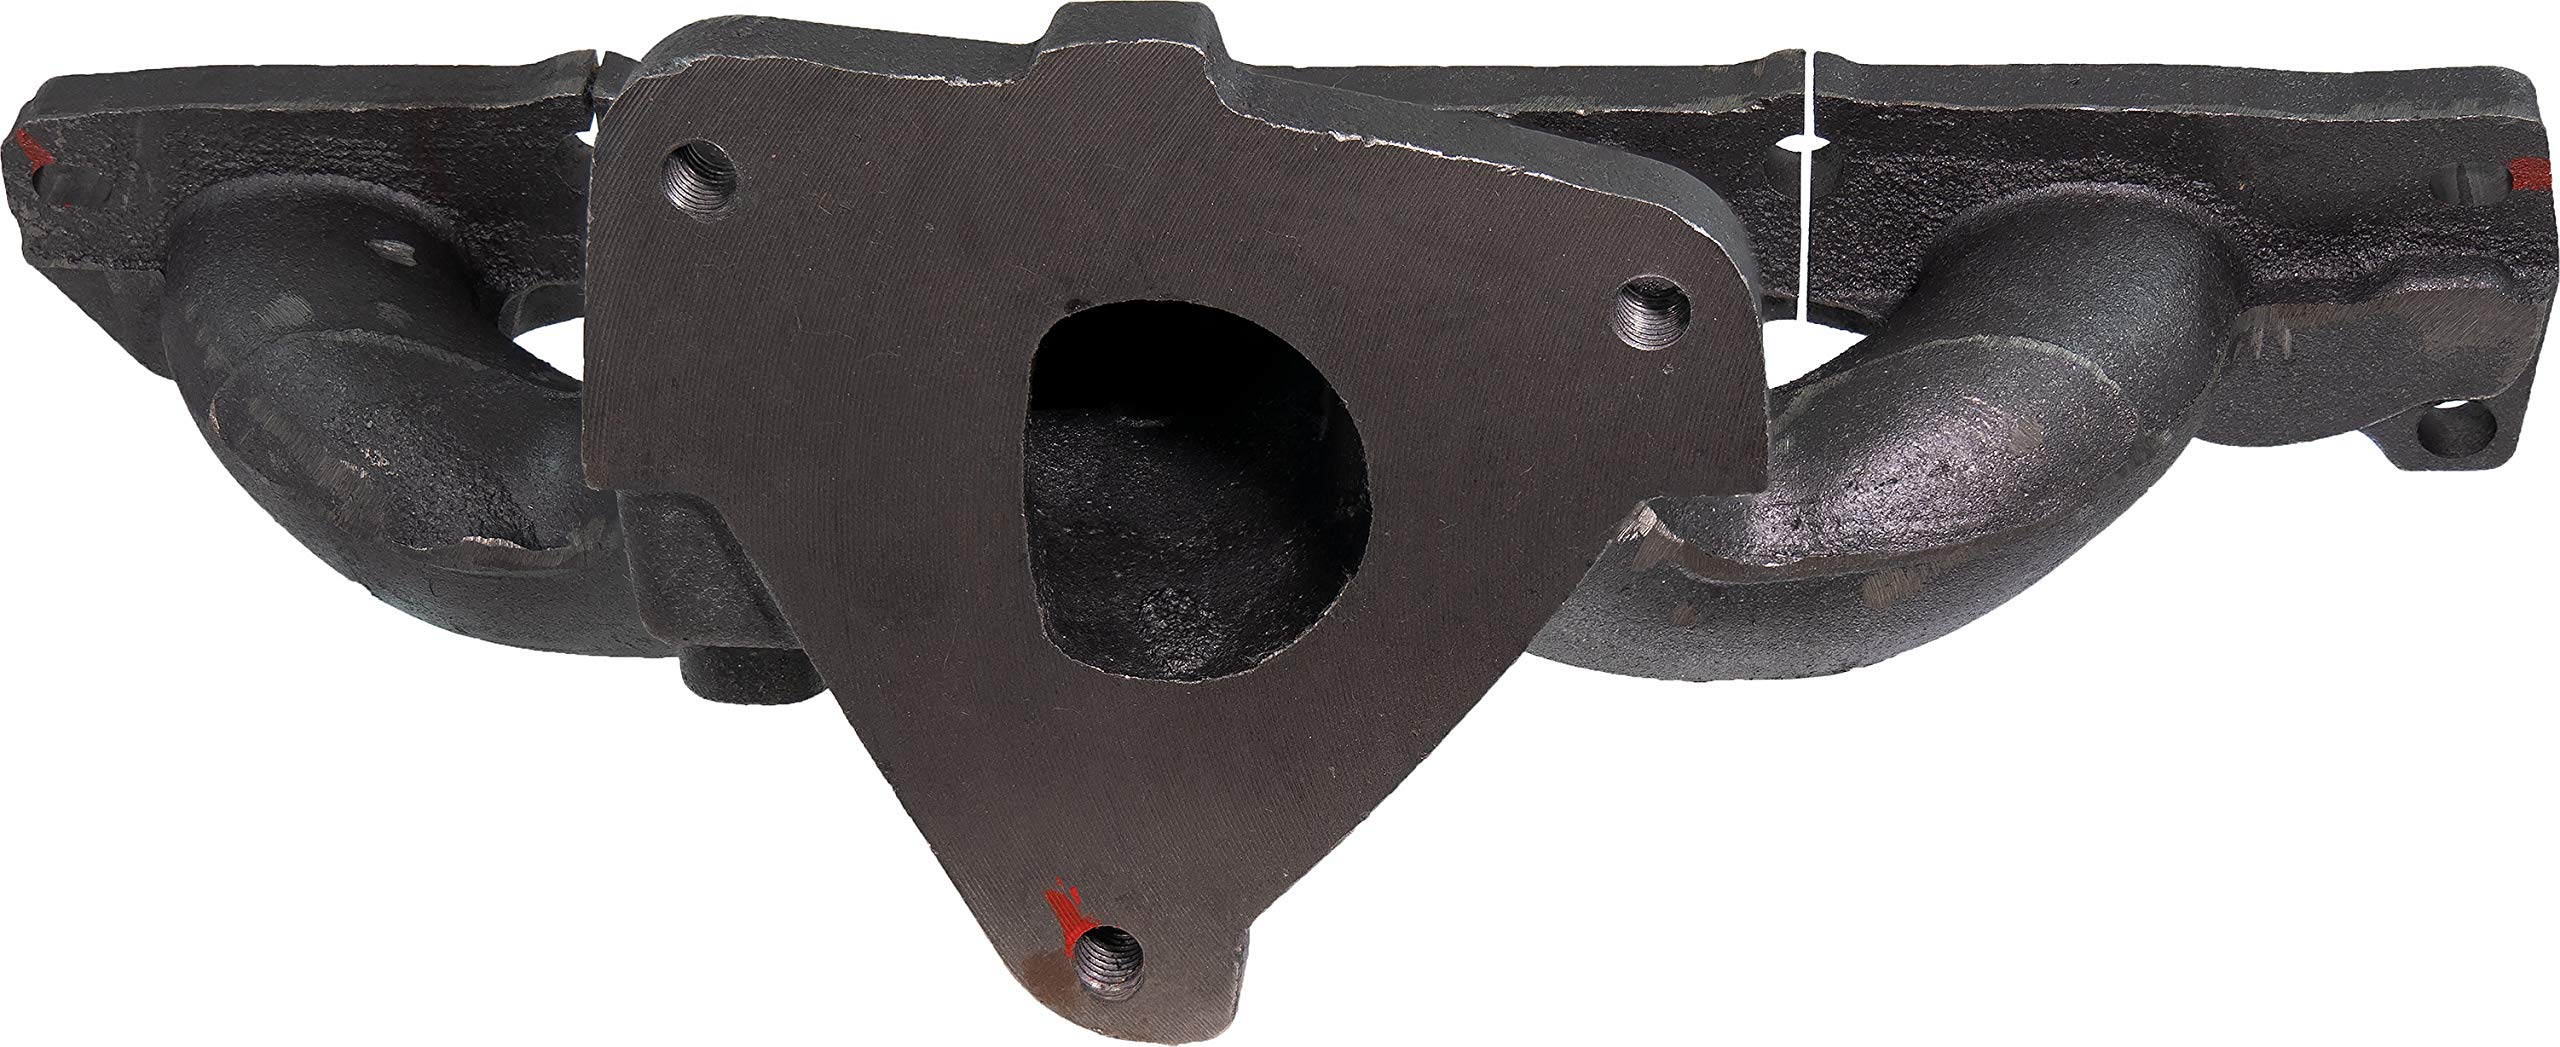 APDTY 785981 Exhaust Manifold Cast Iron Assembly w/Heat Shield, Gaskets, Downspout Studs Fits 2.2L Ecotec 4-Cylinder Engine (Replaces 90537679) by APDTY (Image #4)